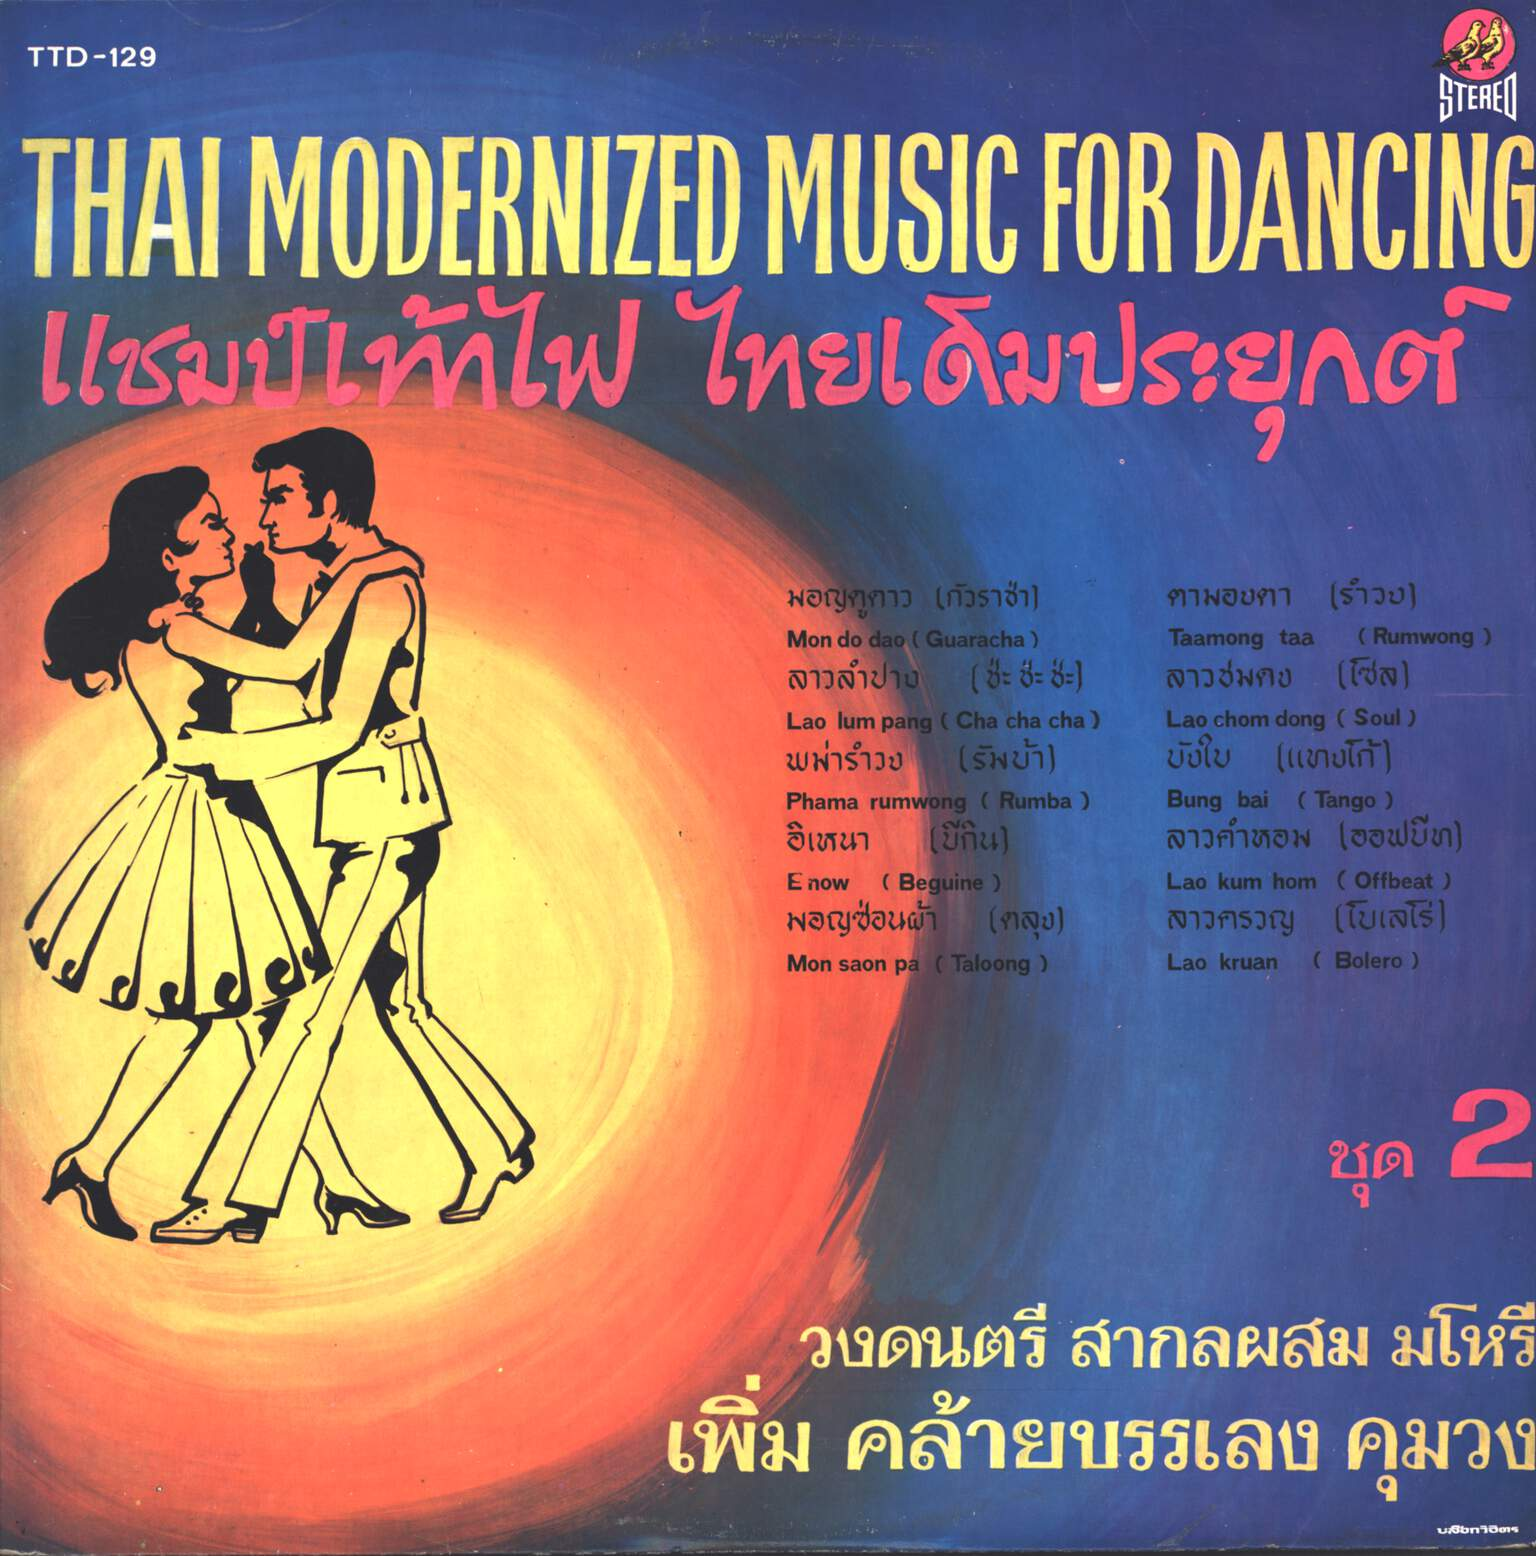 Phoem Khlaibanleng & His International Mixed Mahori Orchestra: Thai Modernized Music For Dancing Vol. 2, LP (Vinyl)